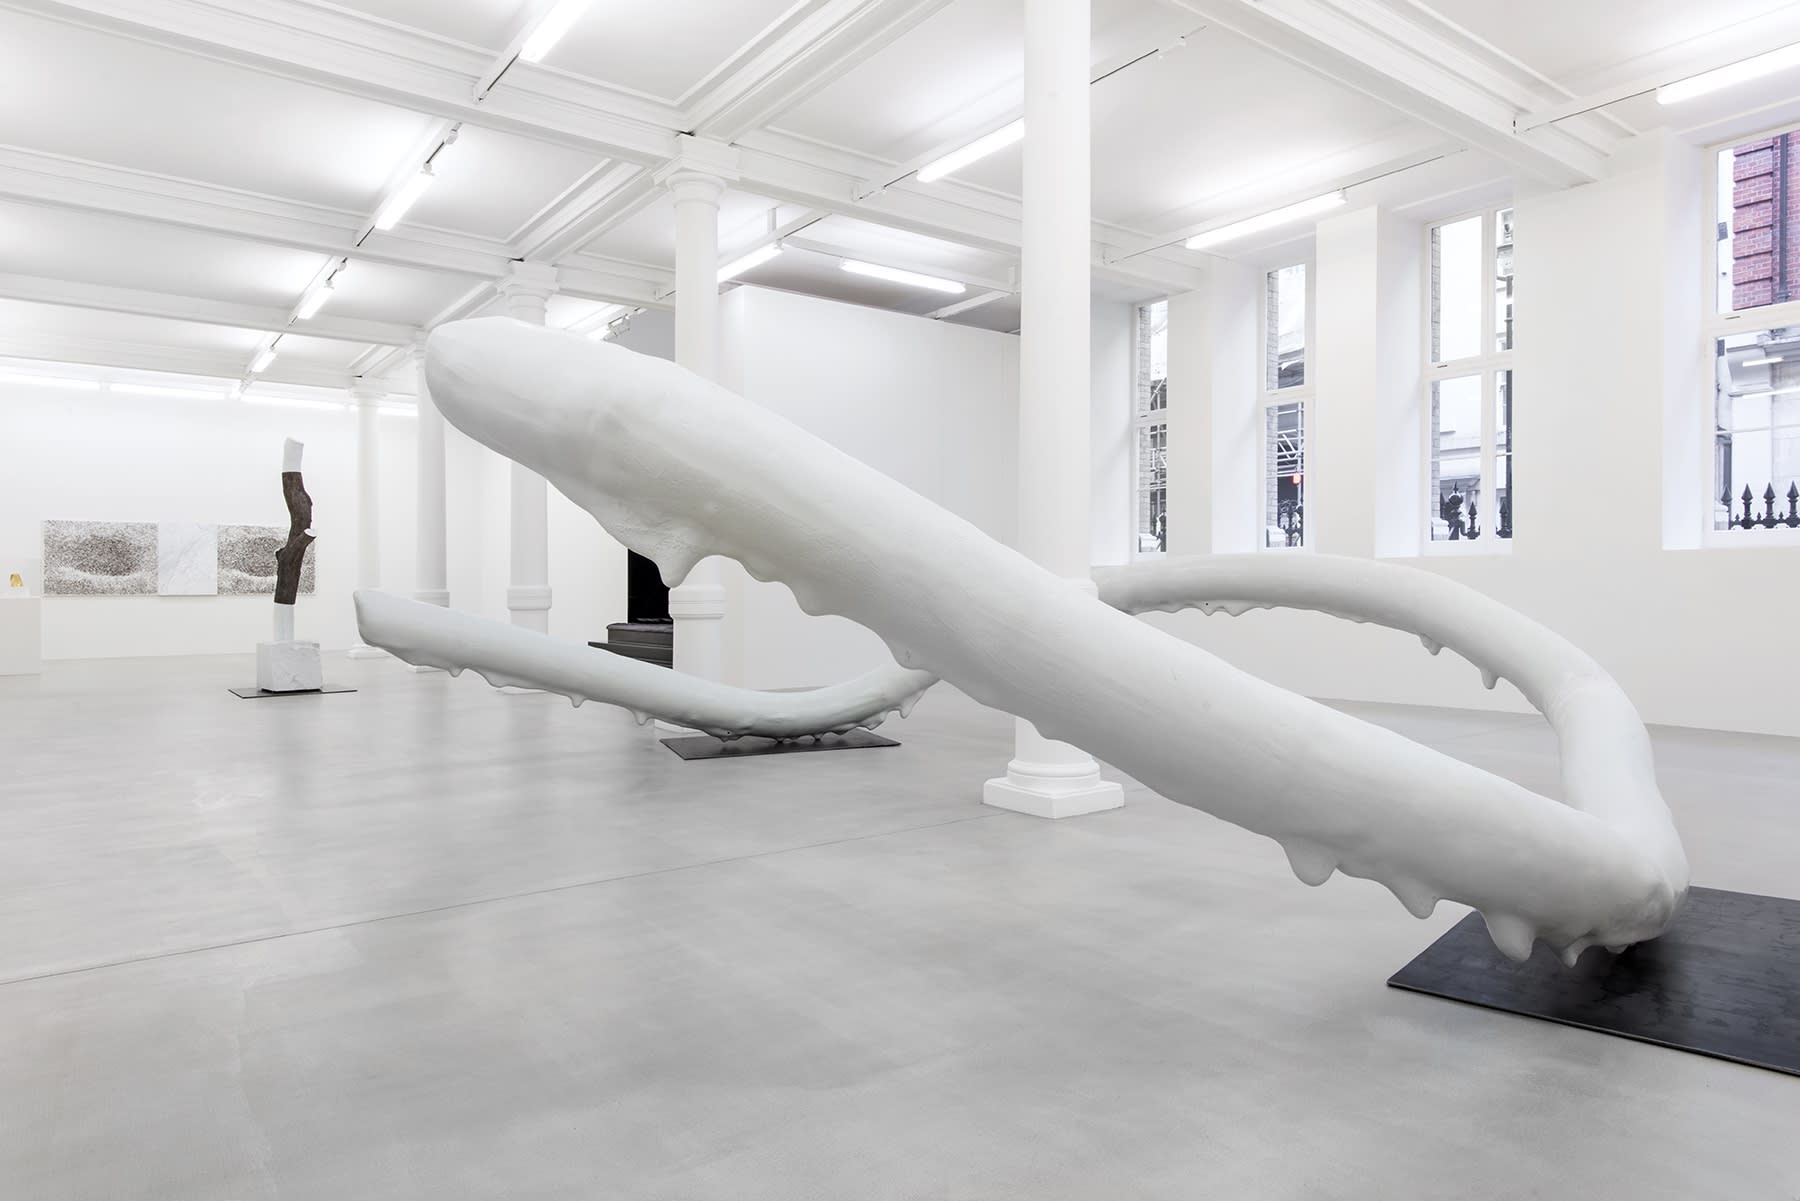 An abstract sculpture that appears to be dripping with white paint sits among other artworks in a gallery.